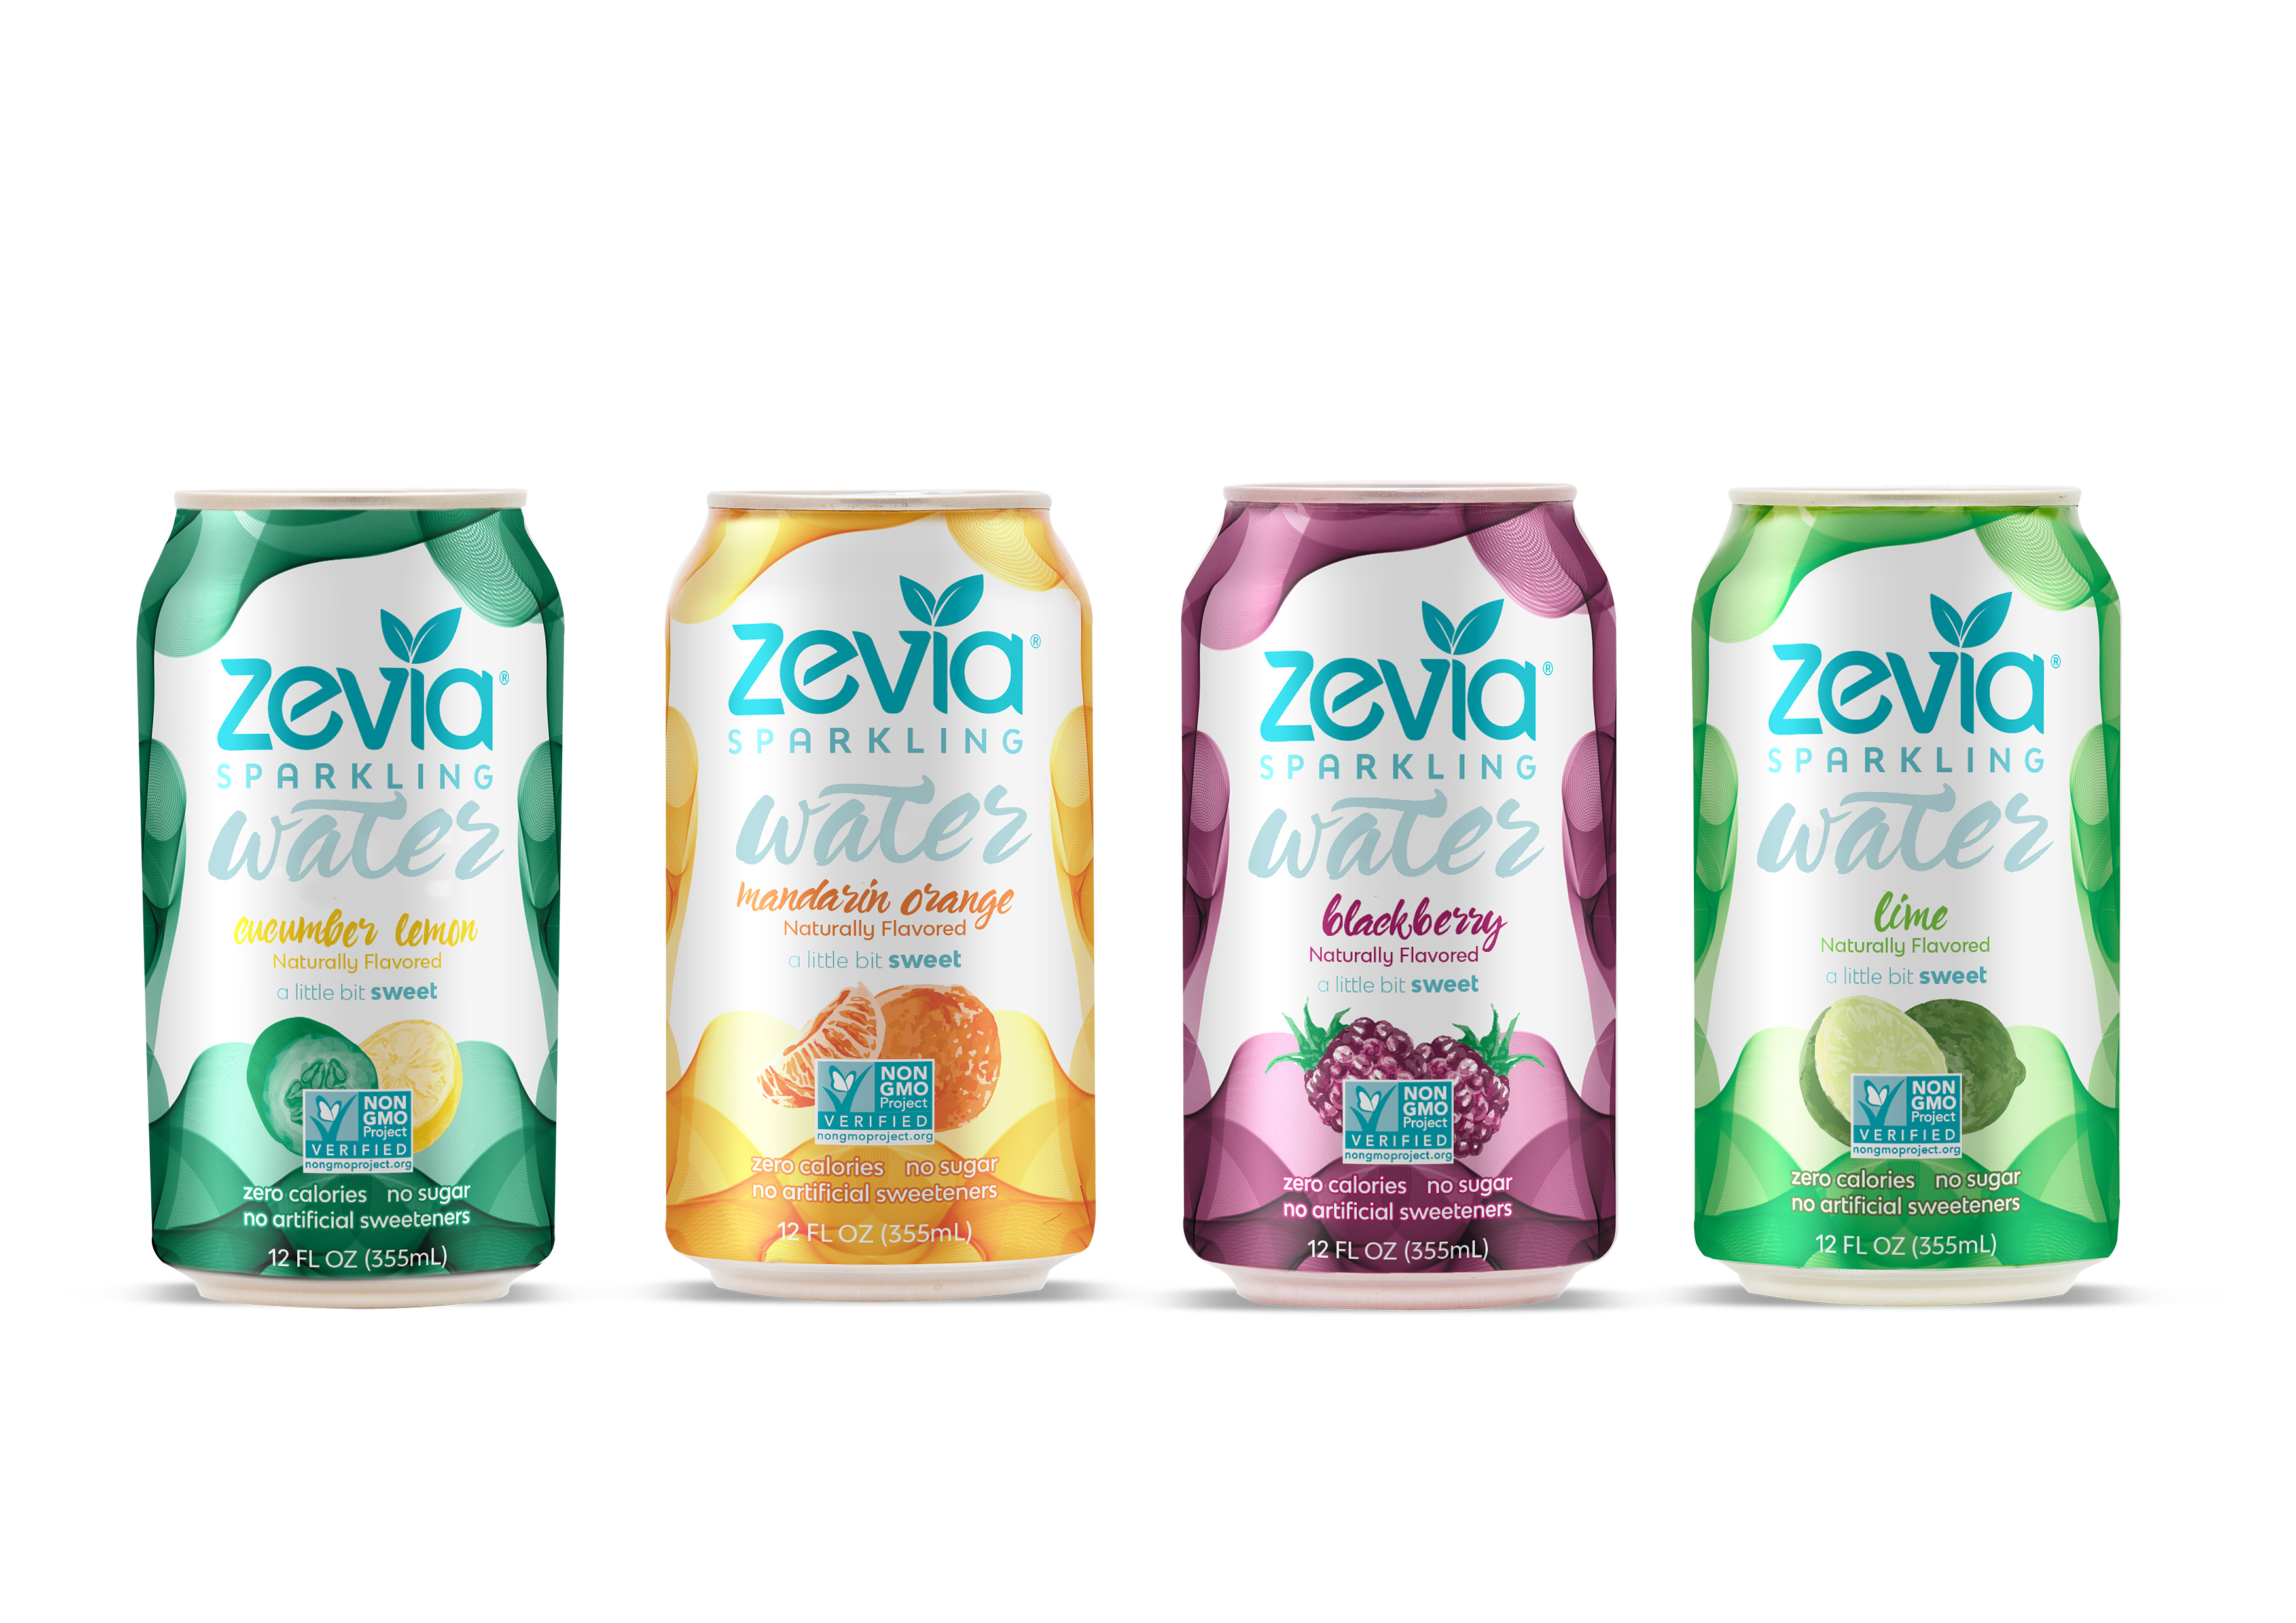 Zevia, known for its line of sodas, is expanding the brand into the sparkling water and energy drink segments of the beverage aisle.